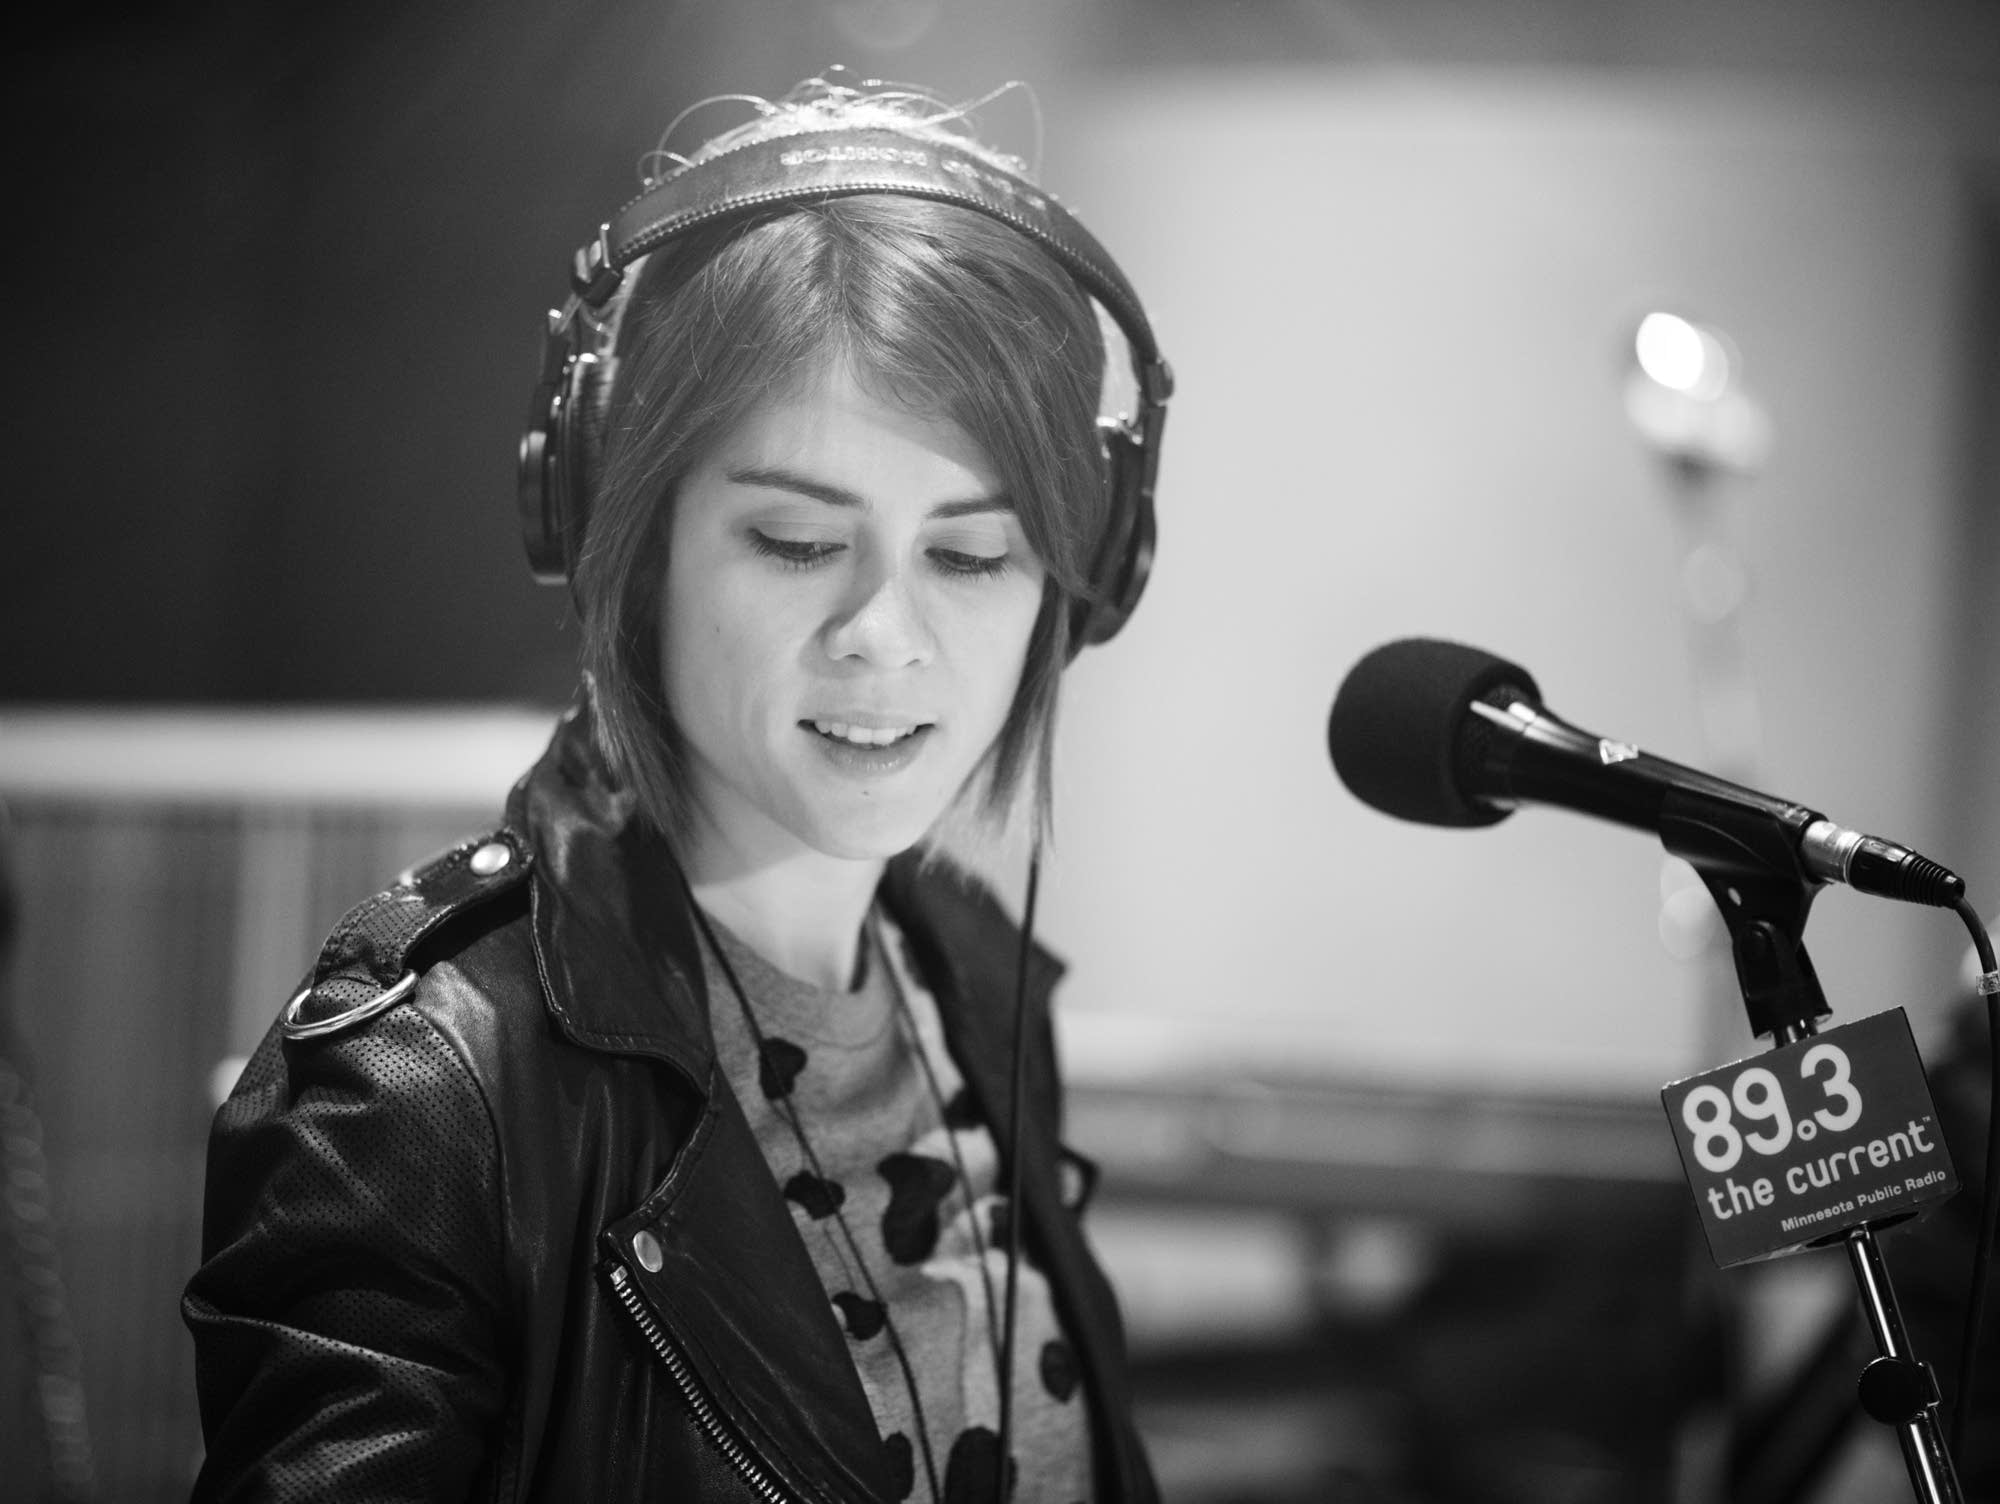 Tegan Quin, of Tegan and Sara